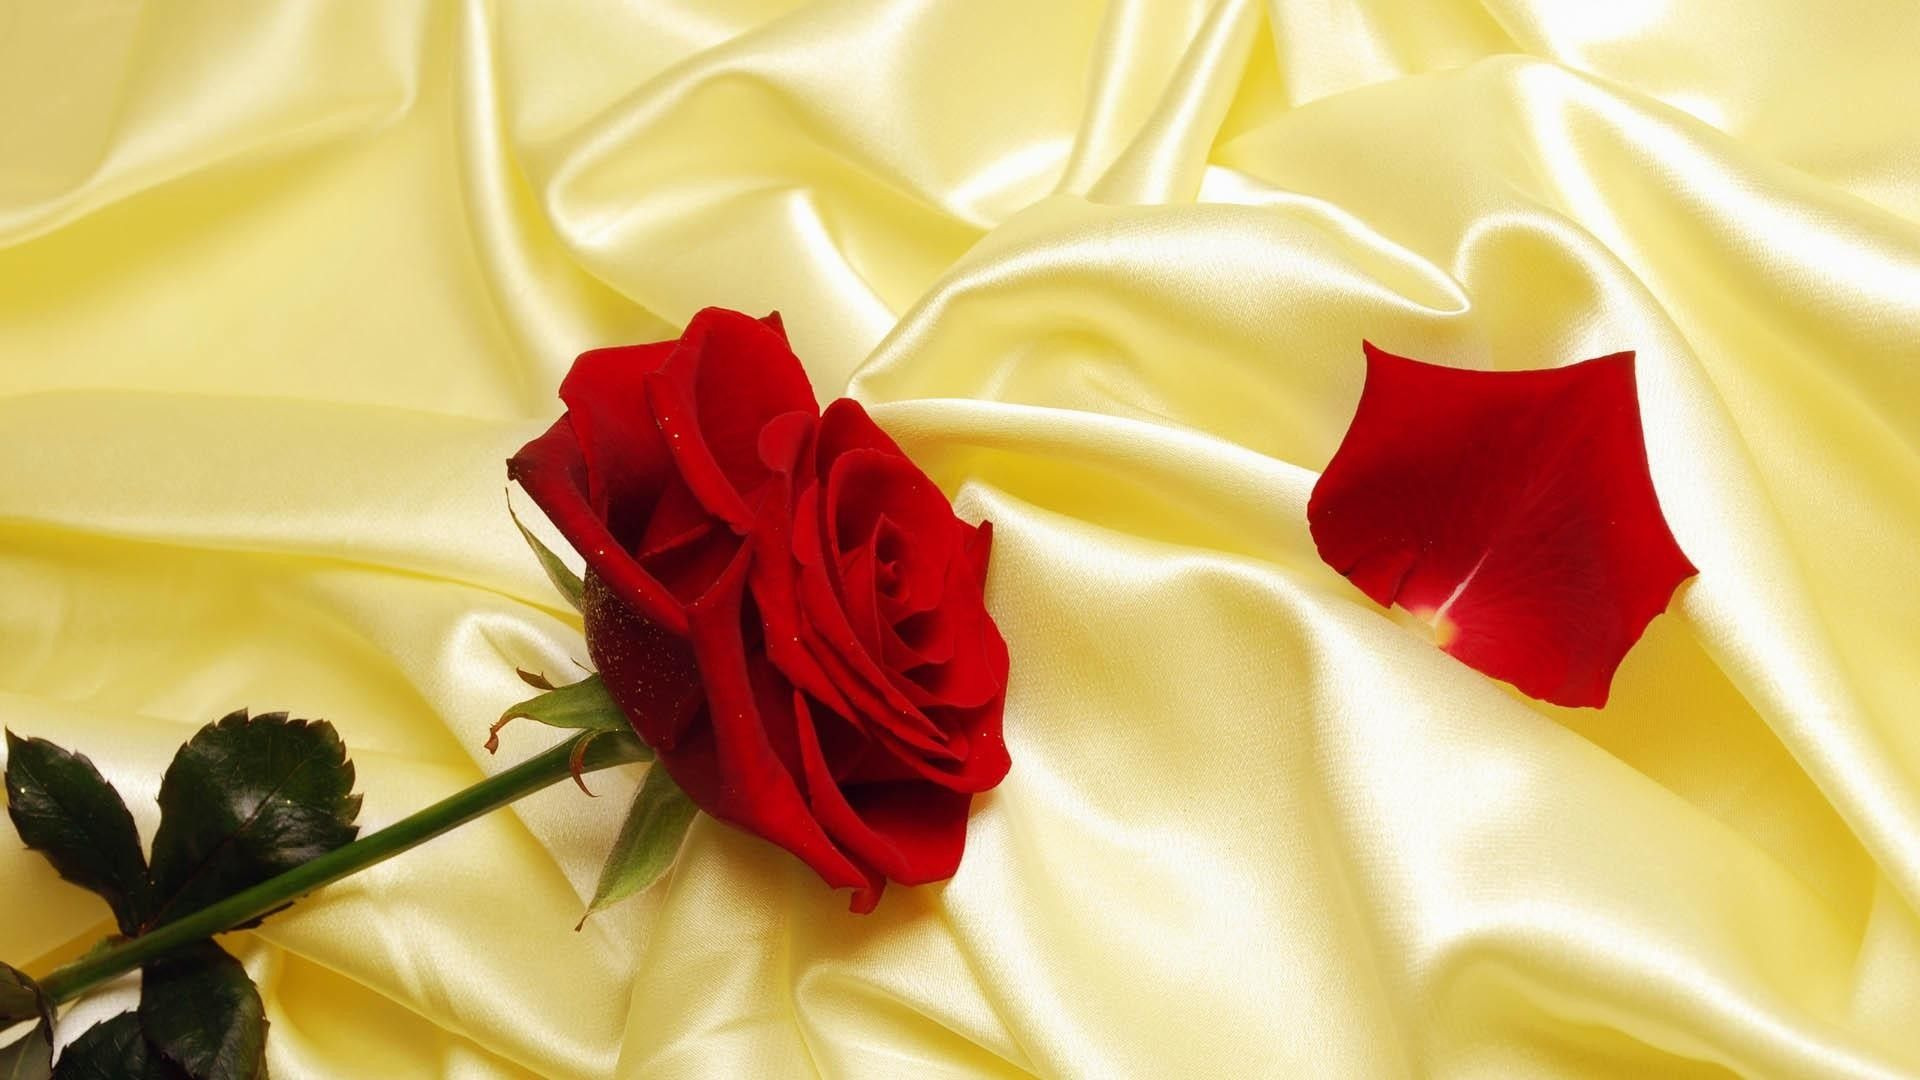 one red rose with a torn petal on a yellow fabric